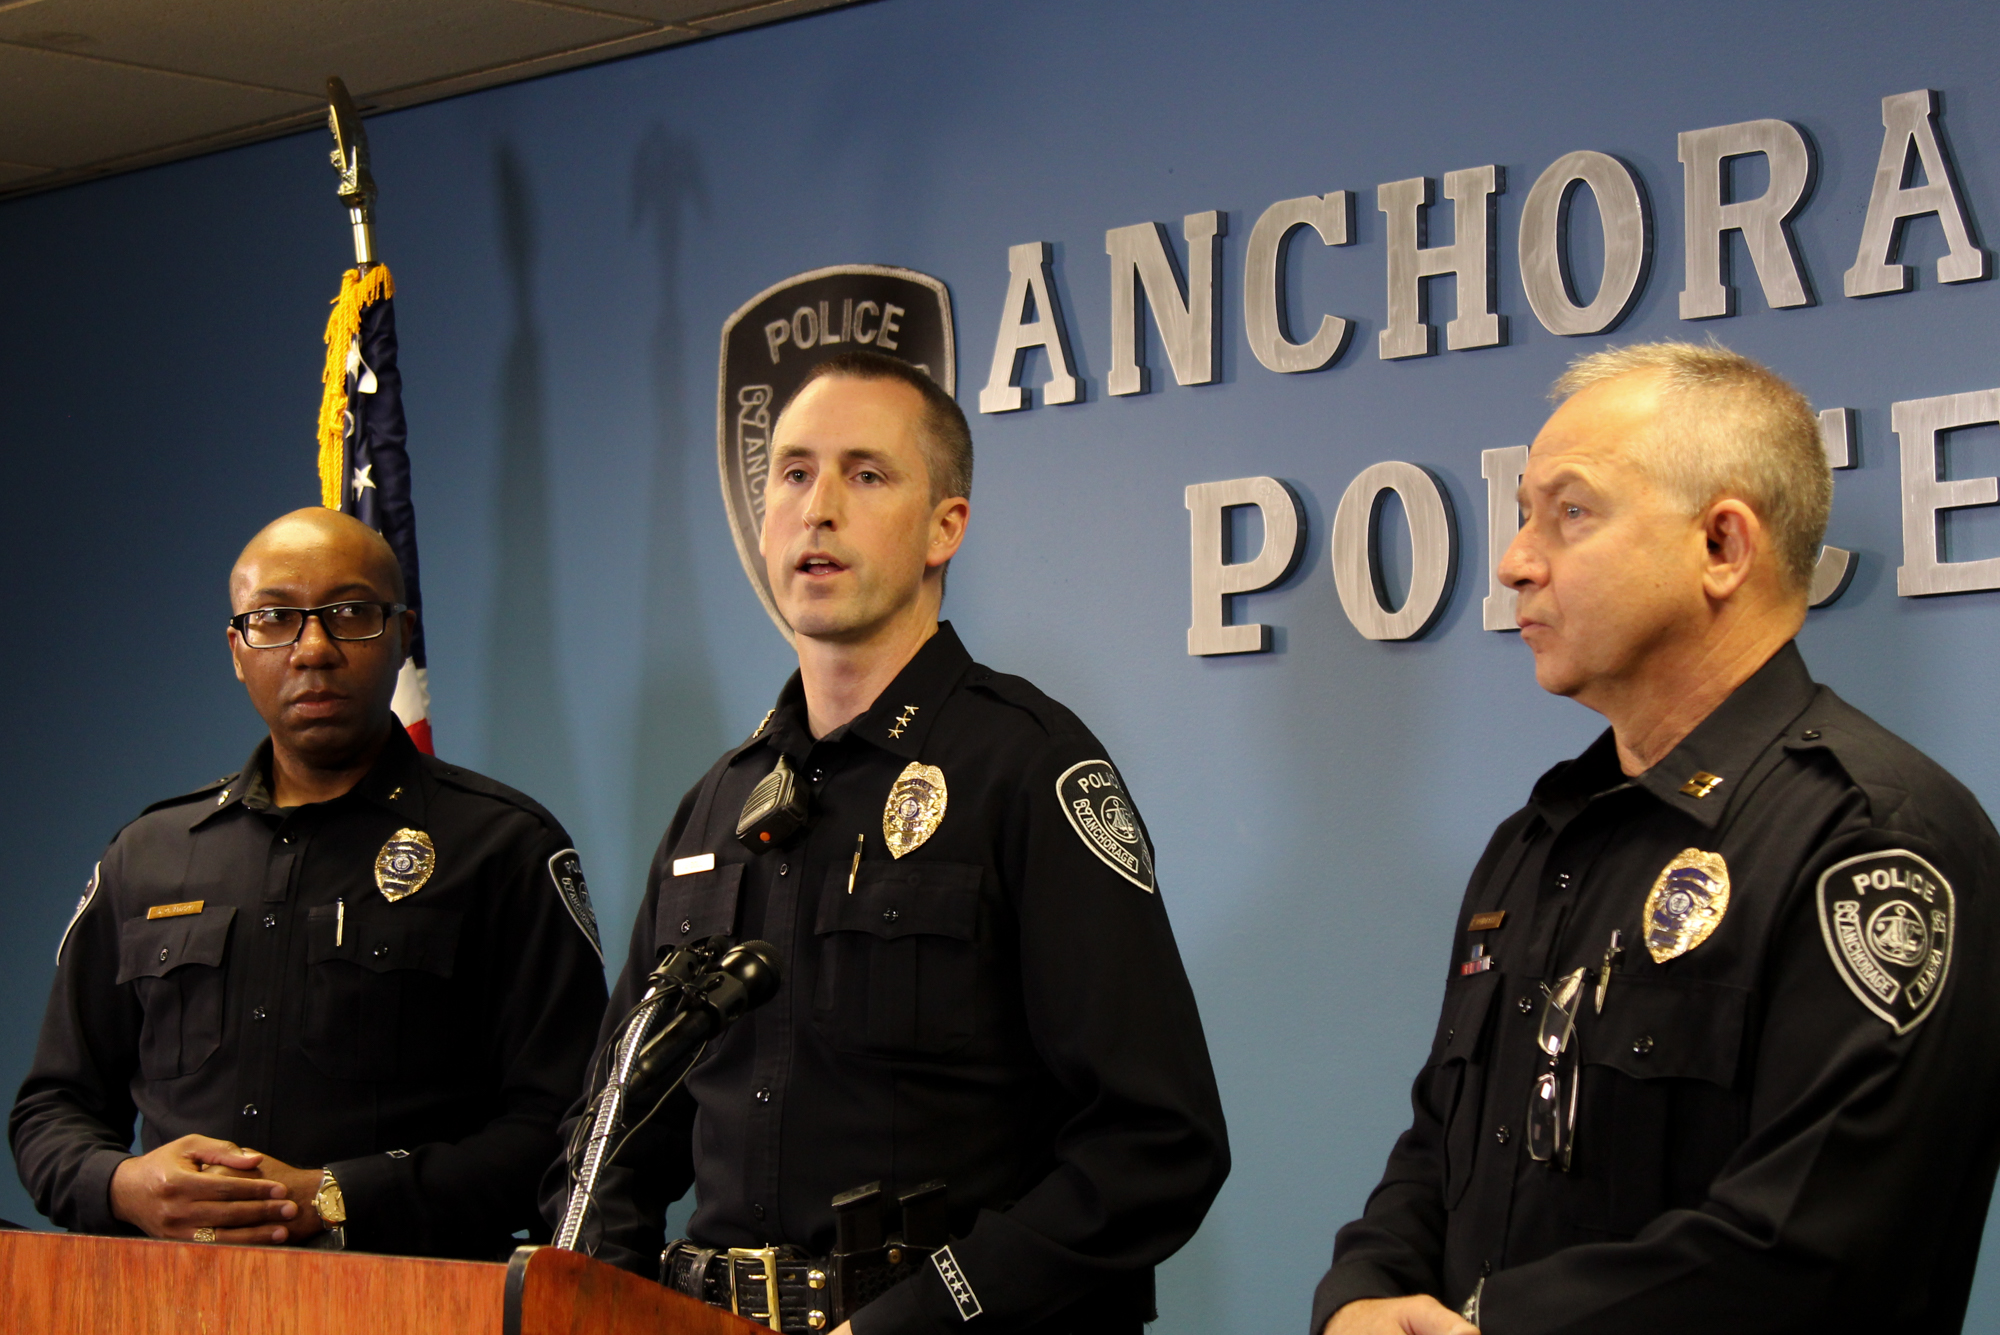 Anchorage police Capt. Ken McCoy, left, listens as Police Chief Justin Doll speaks about the Anchorage Police Department's new crime suppression strategy at departmetn headquarters next to Lt. Kevin Vandegriff. (Photo by Zachariah Hughes/Alaska Public Media)